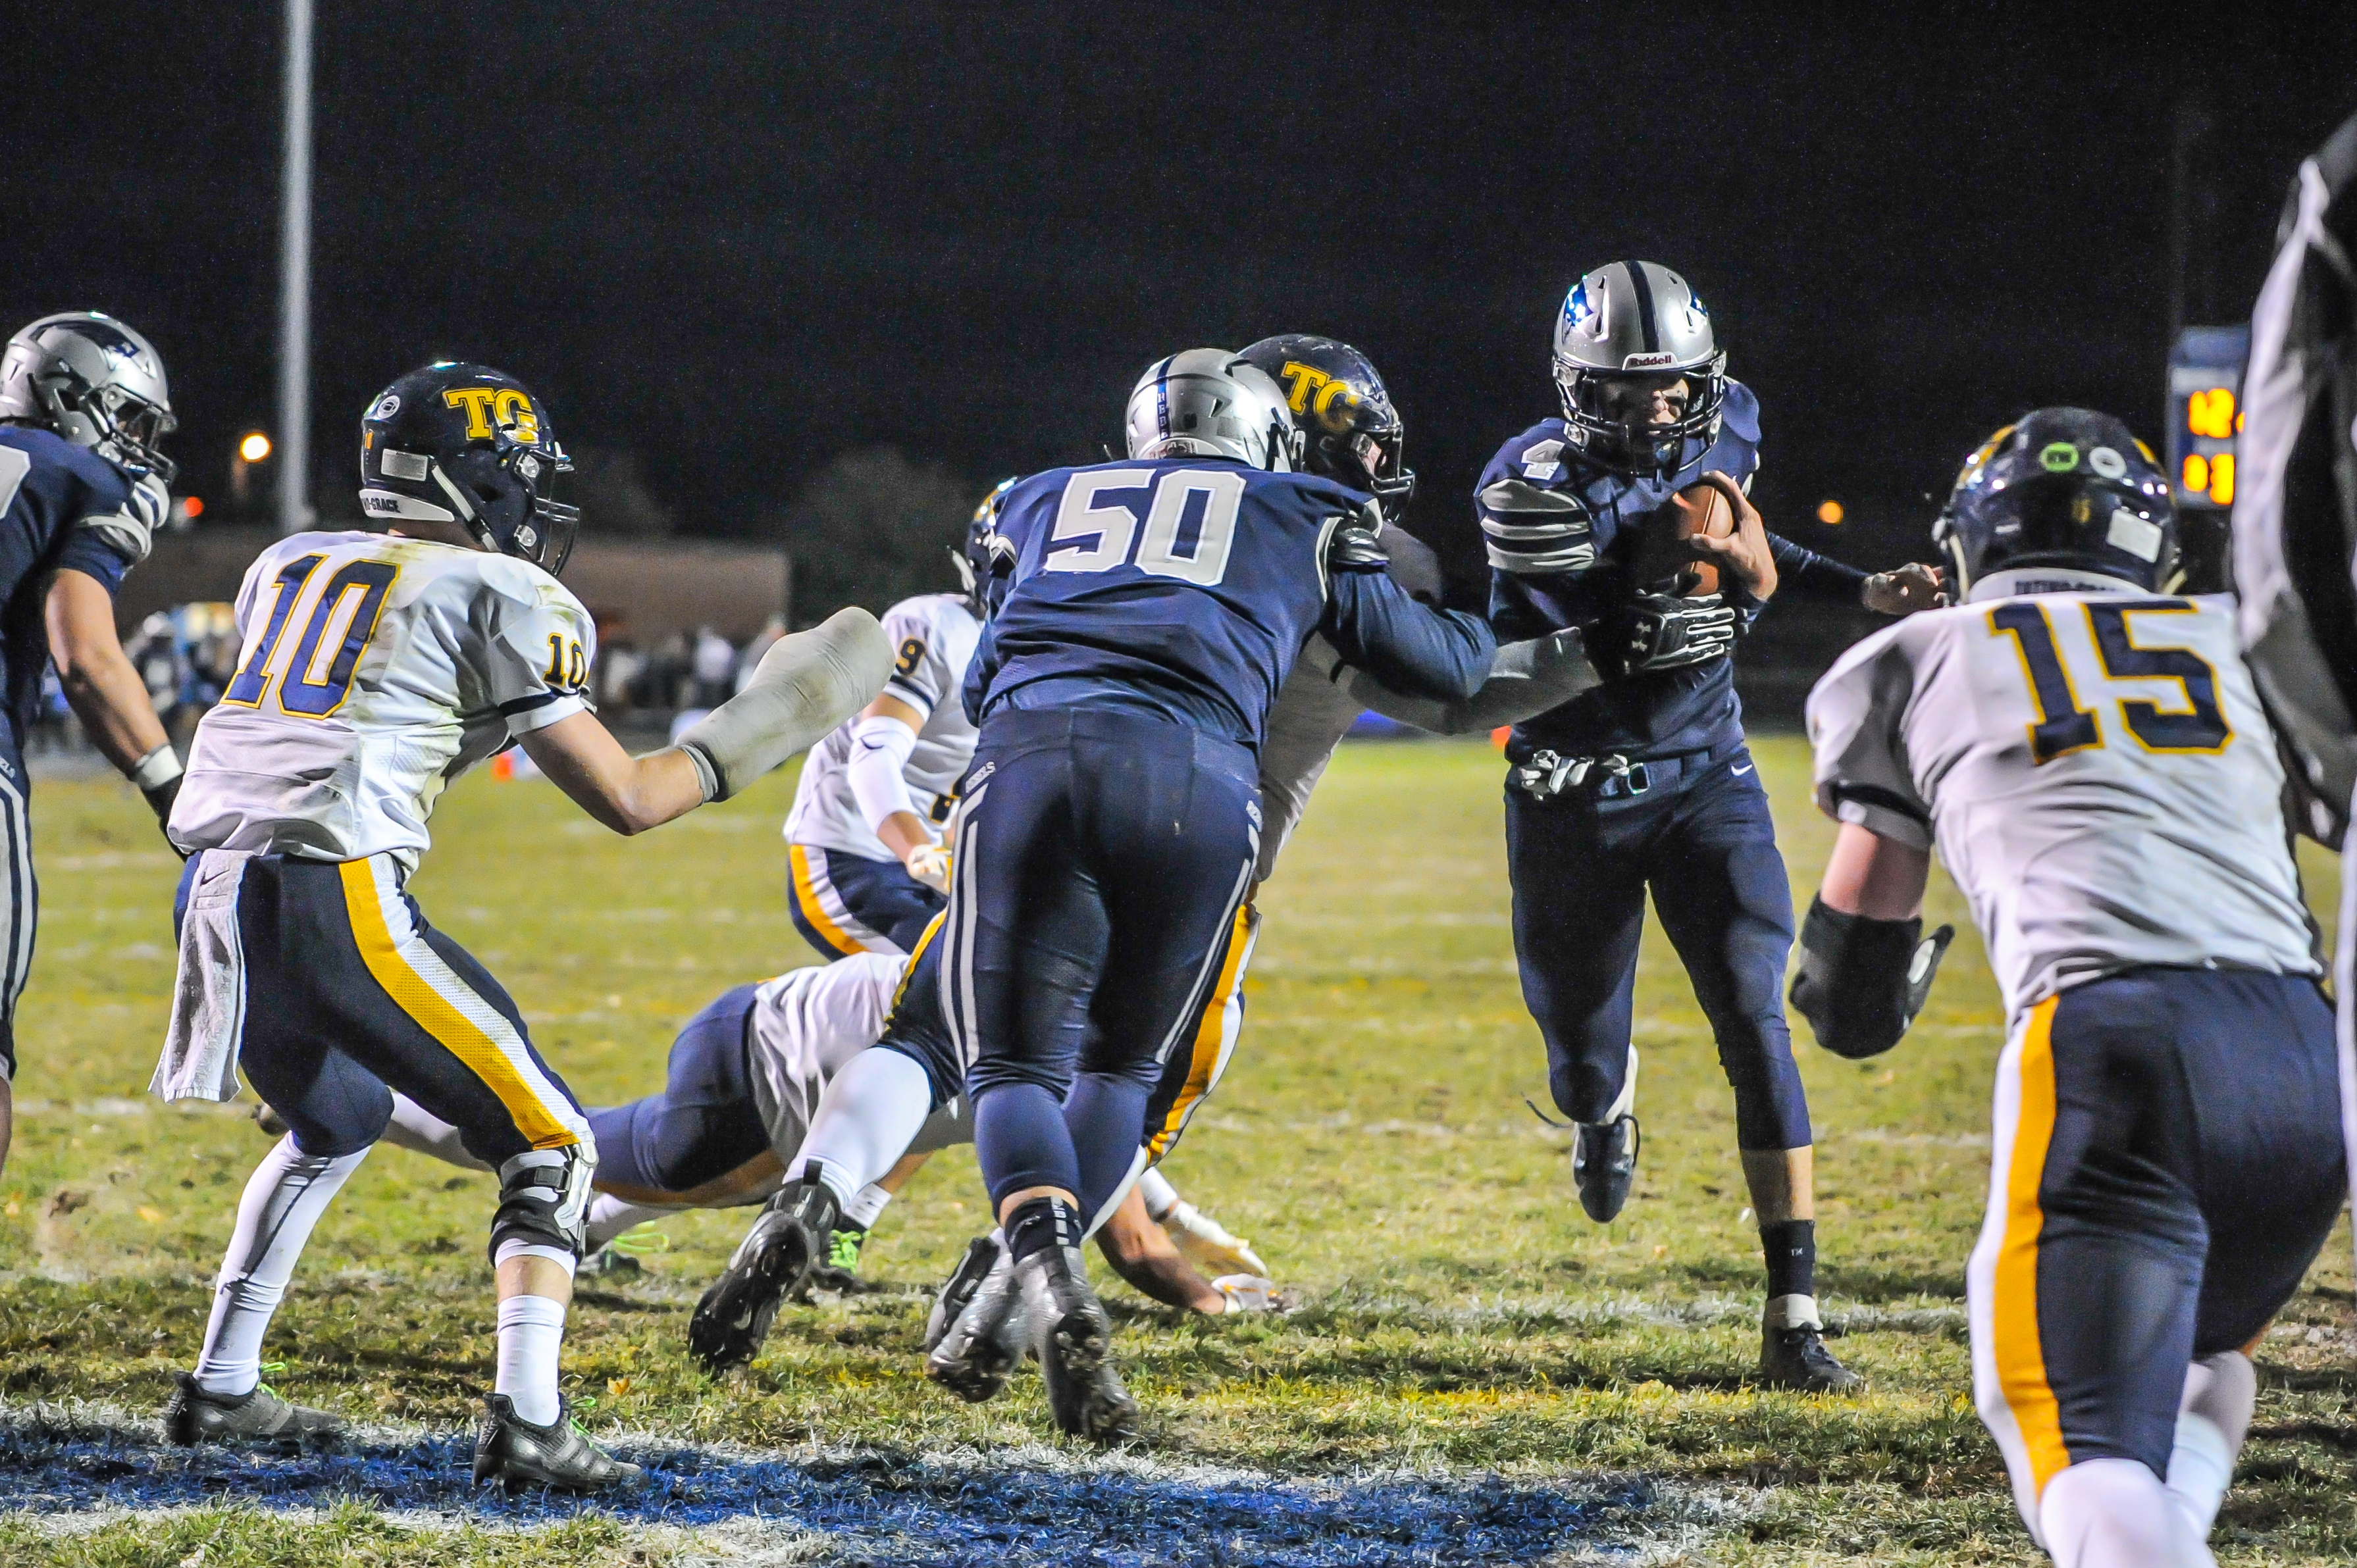 Champlin Park's Jaice Miller rushes into the end zone in the final game of the regular season, beating Totino-Grace 41-34 Wednesday evening. Photo by Earl J. Ebensteiner, SportsEngine